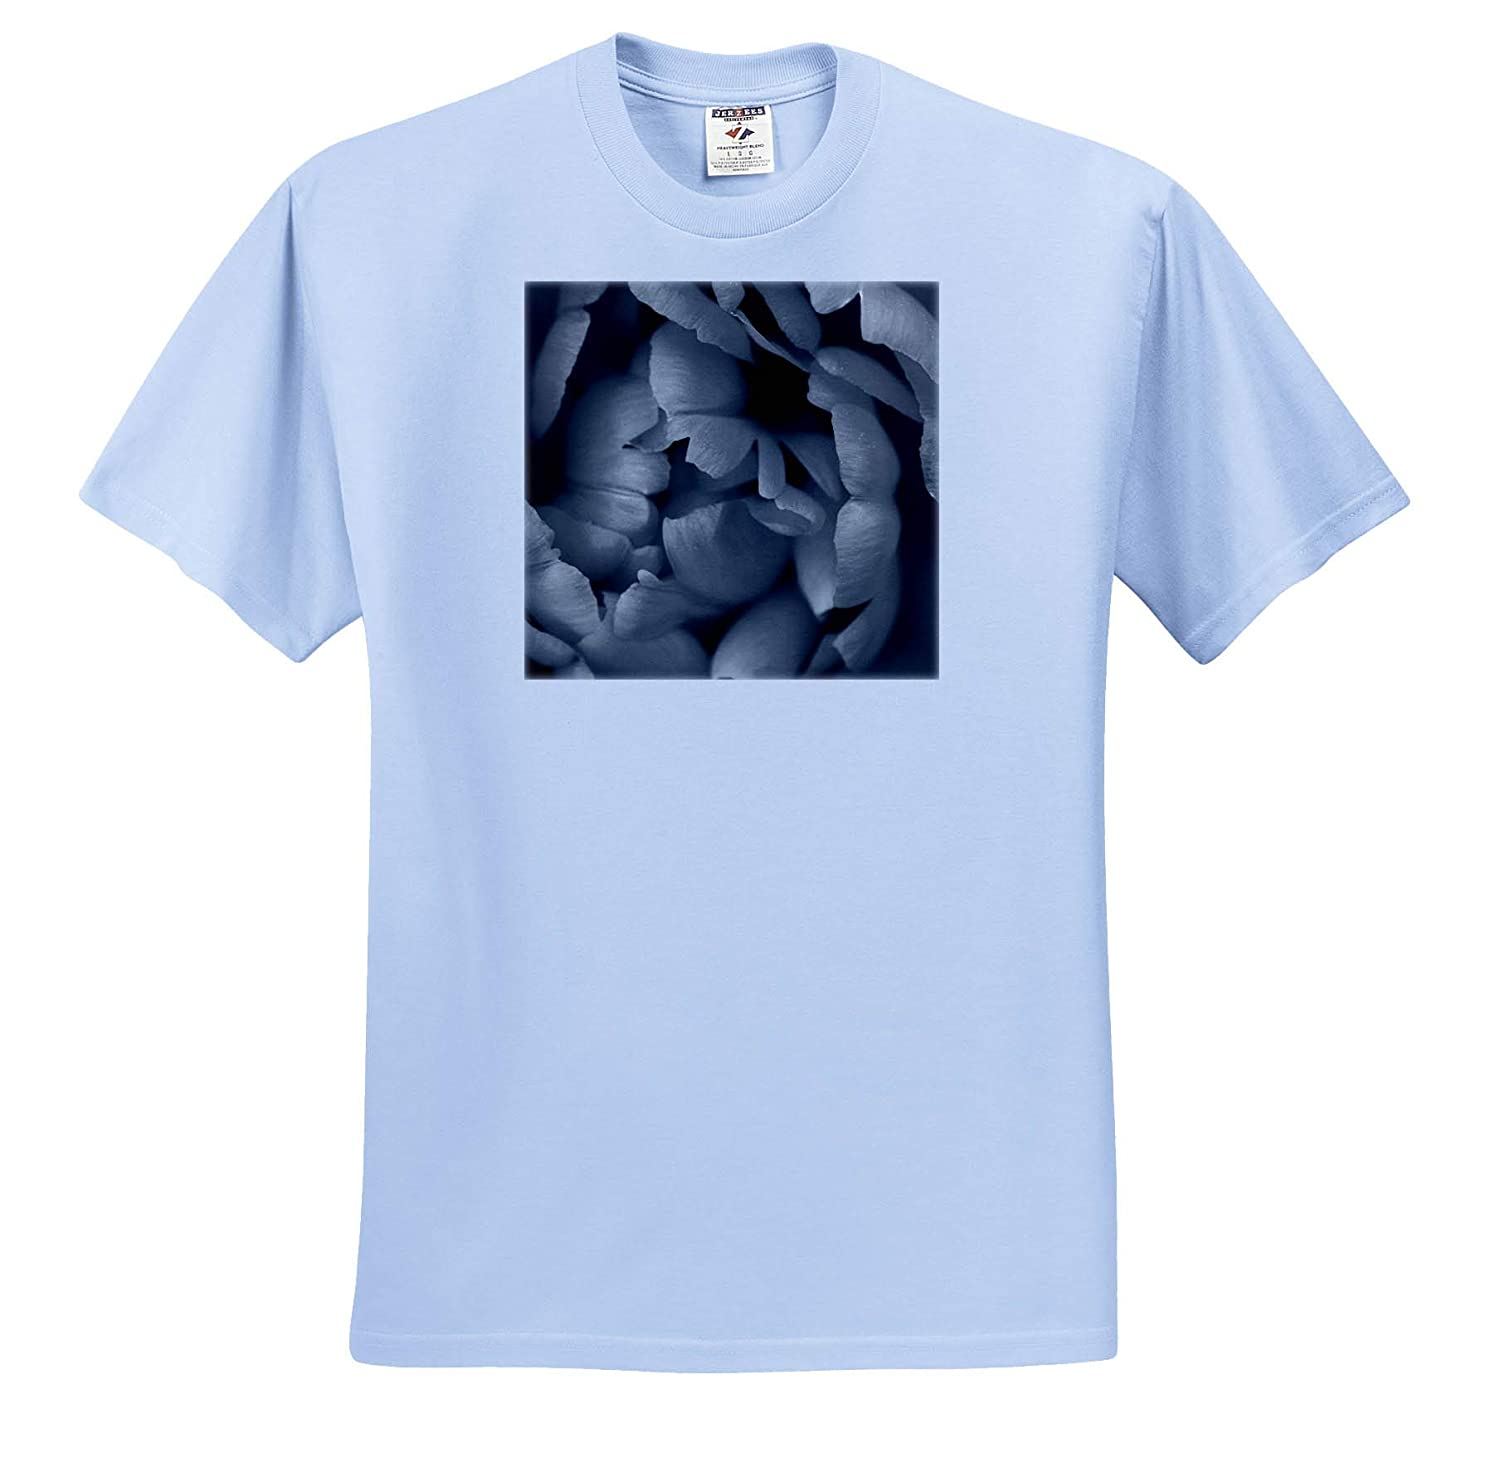 Black and White Macro Photograph of Tulip Petals 3dRose Stamp City Flowers - Adult T-Shirt XL ts/_309950